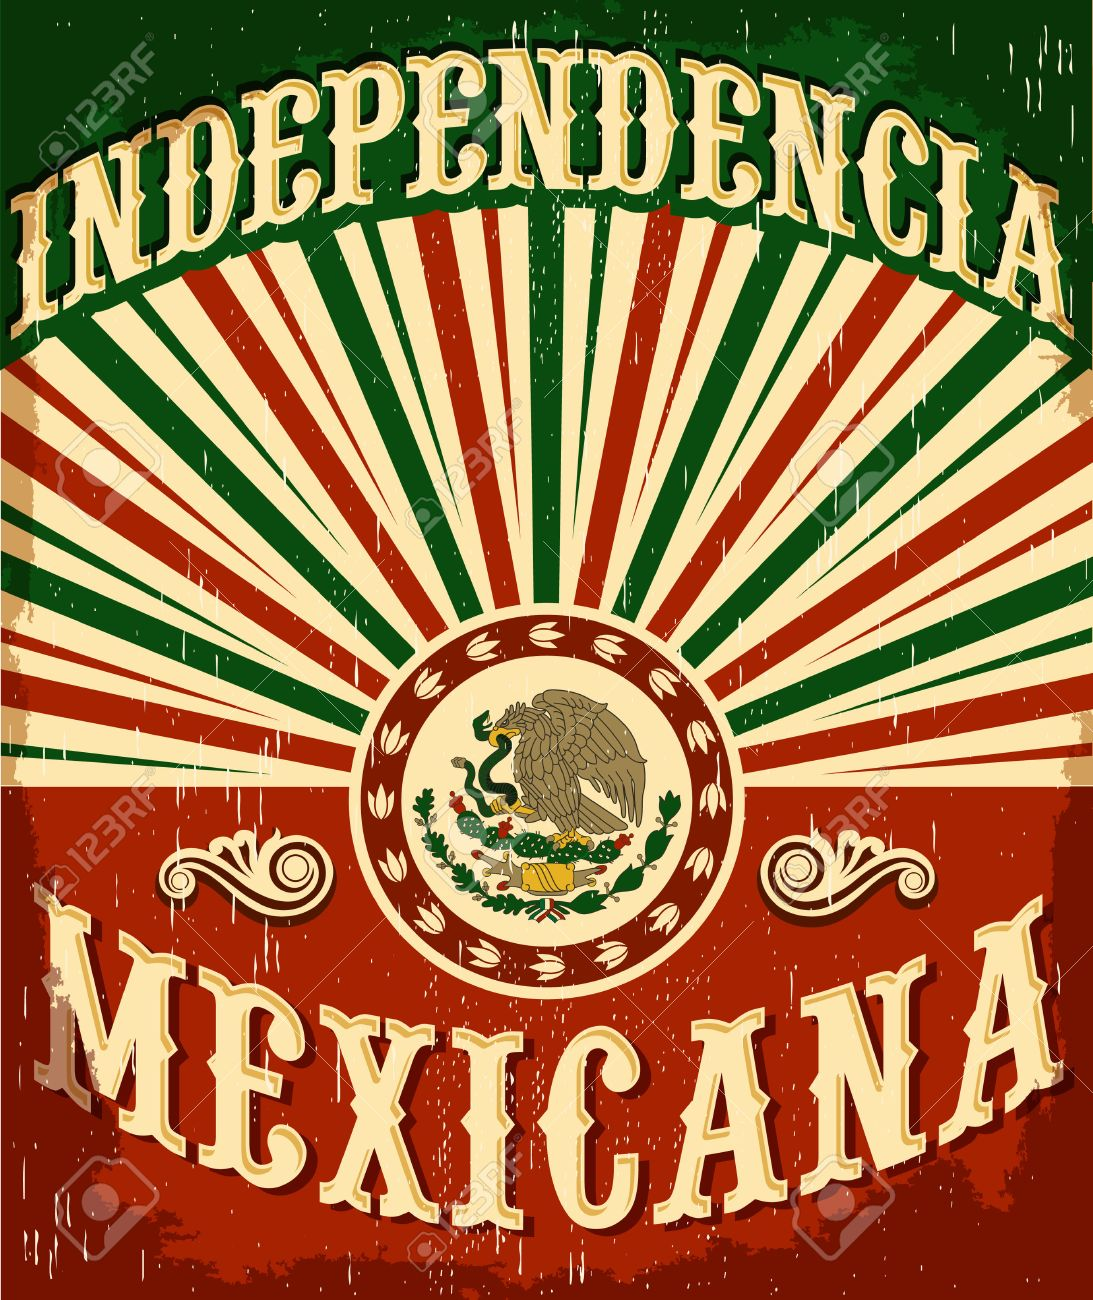 Independencia Mexicana - Mexican independence vintage poster design - mexican flag patriotic colors - 44671190